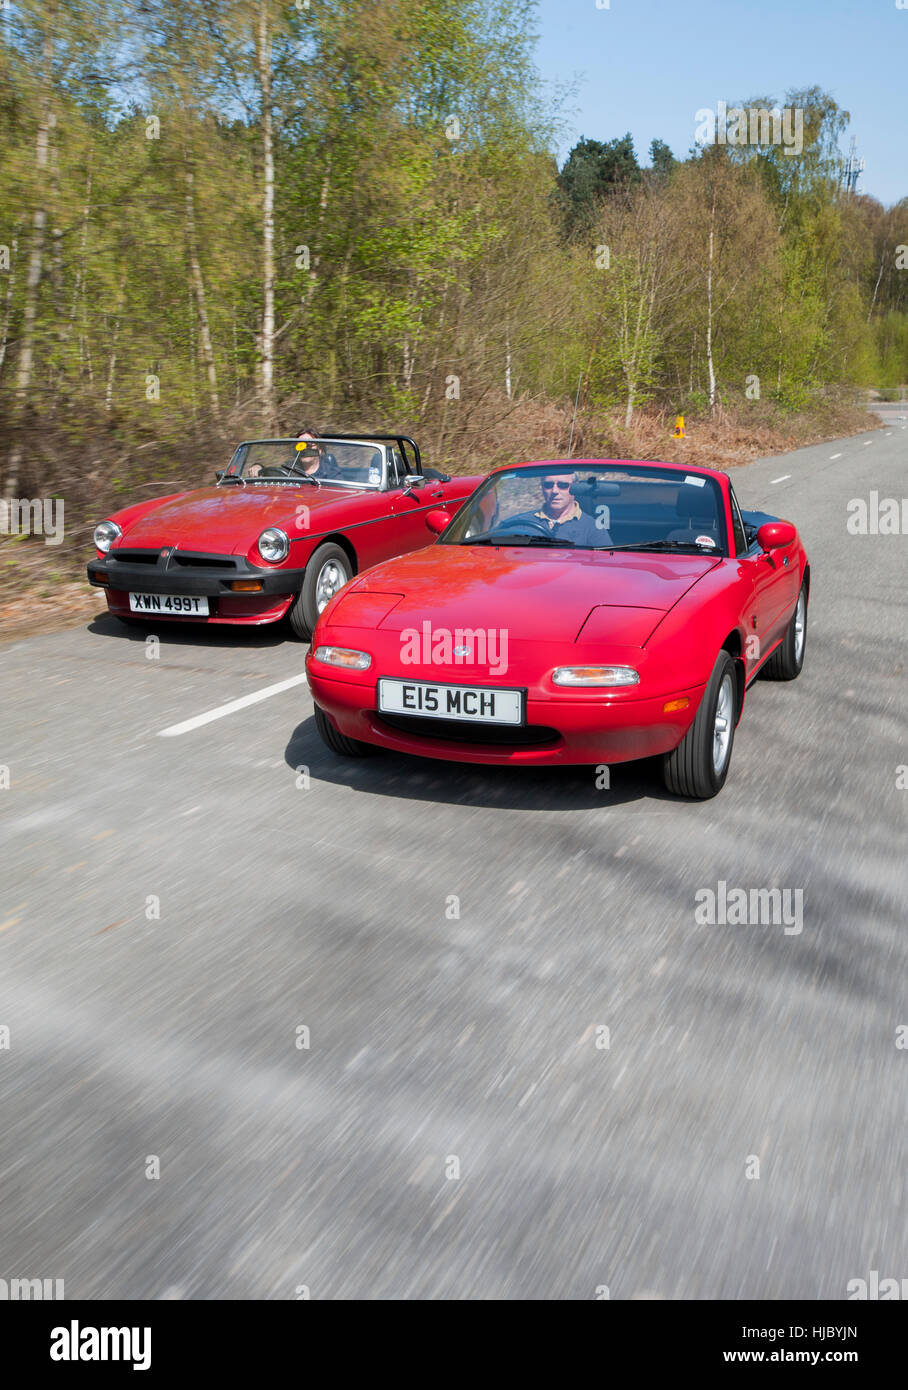 Mazda MX5 and MGB roadster open top sports cars driving together on a summers day - Stock Image